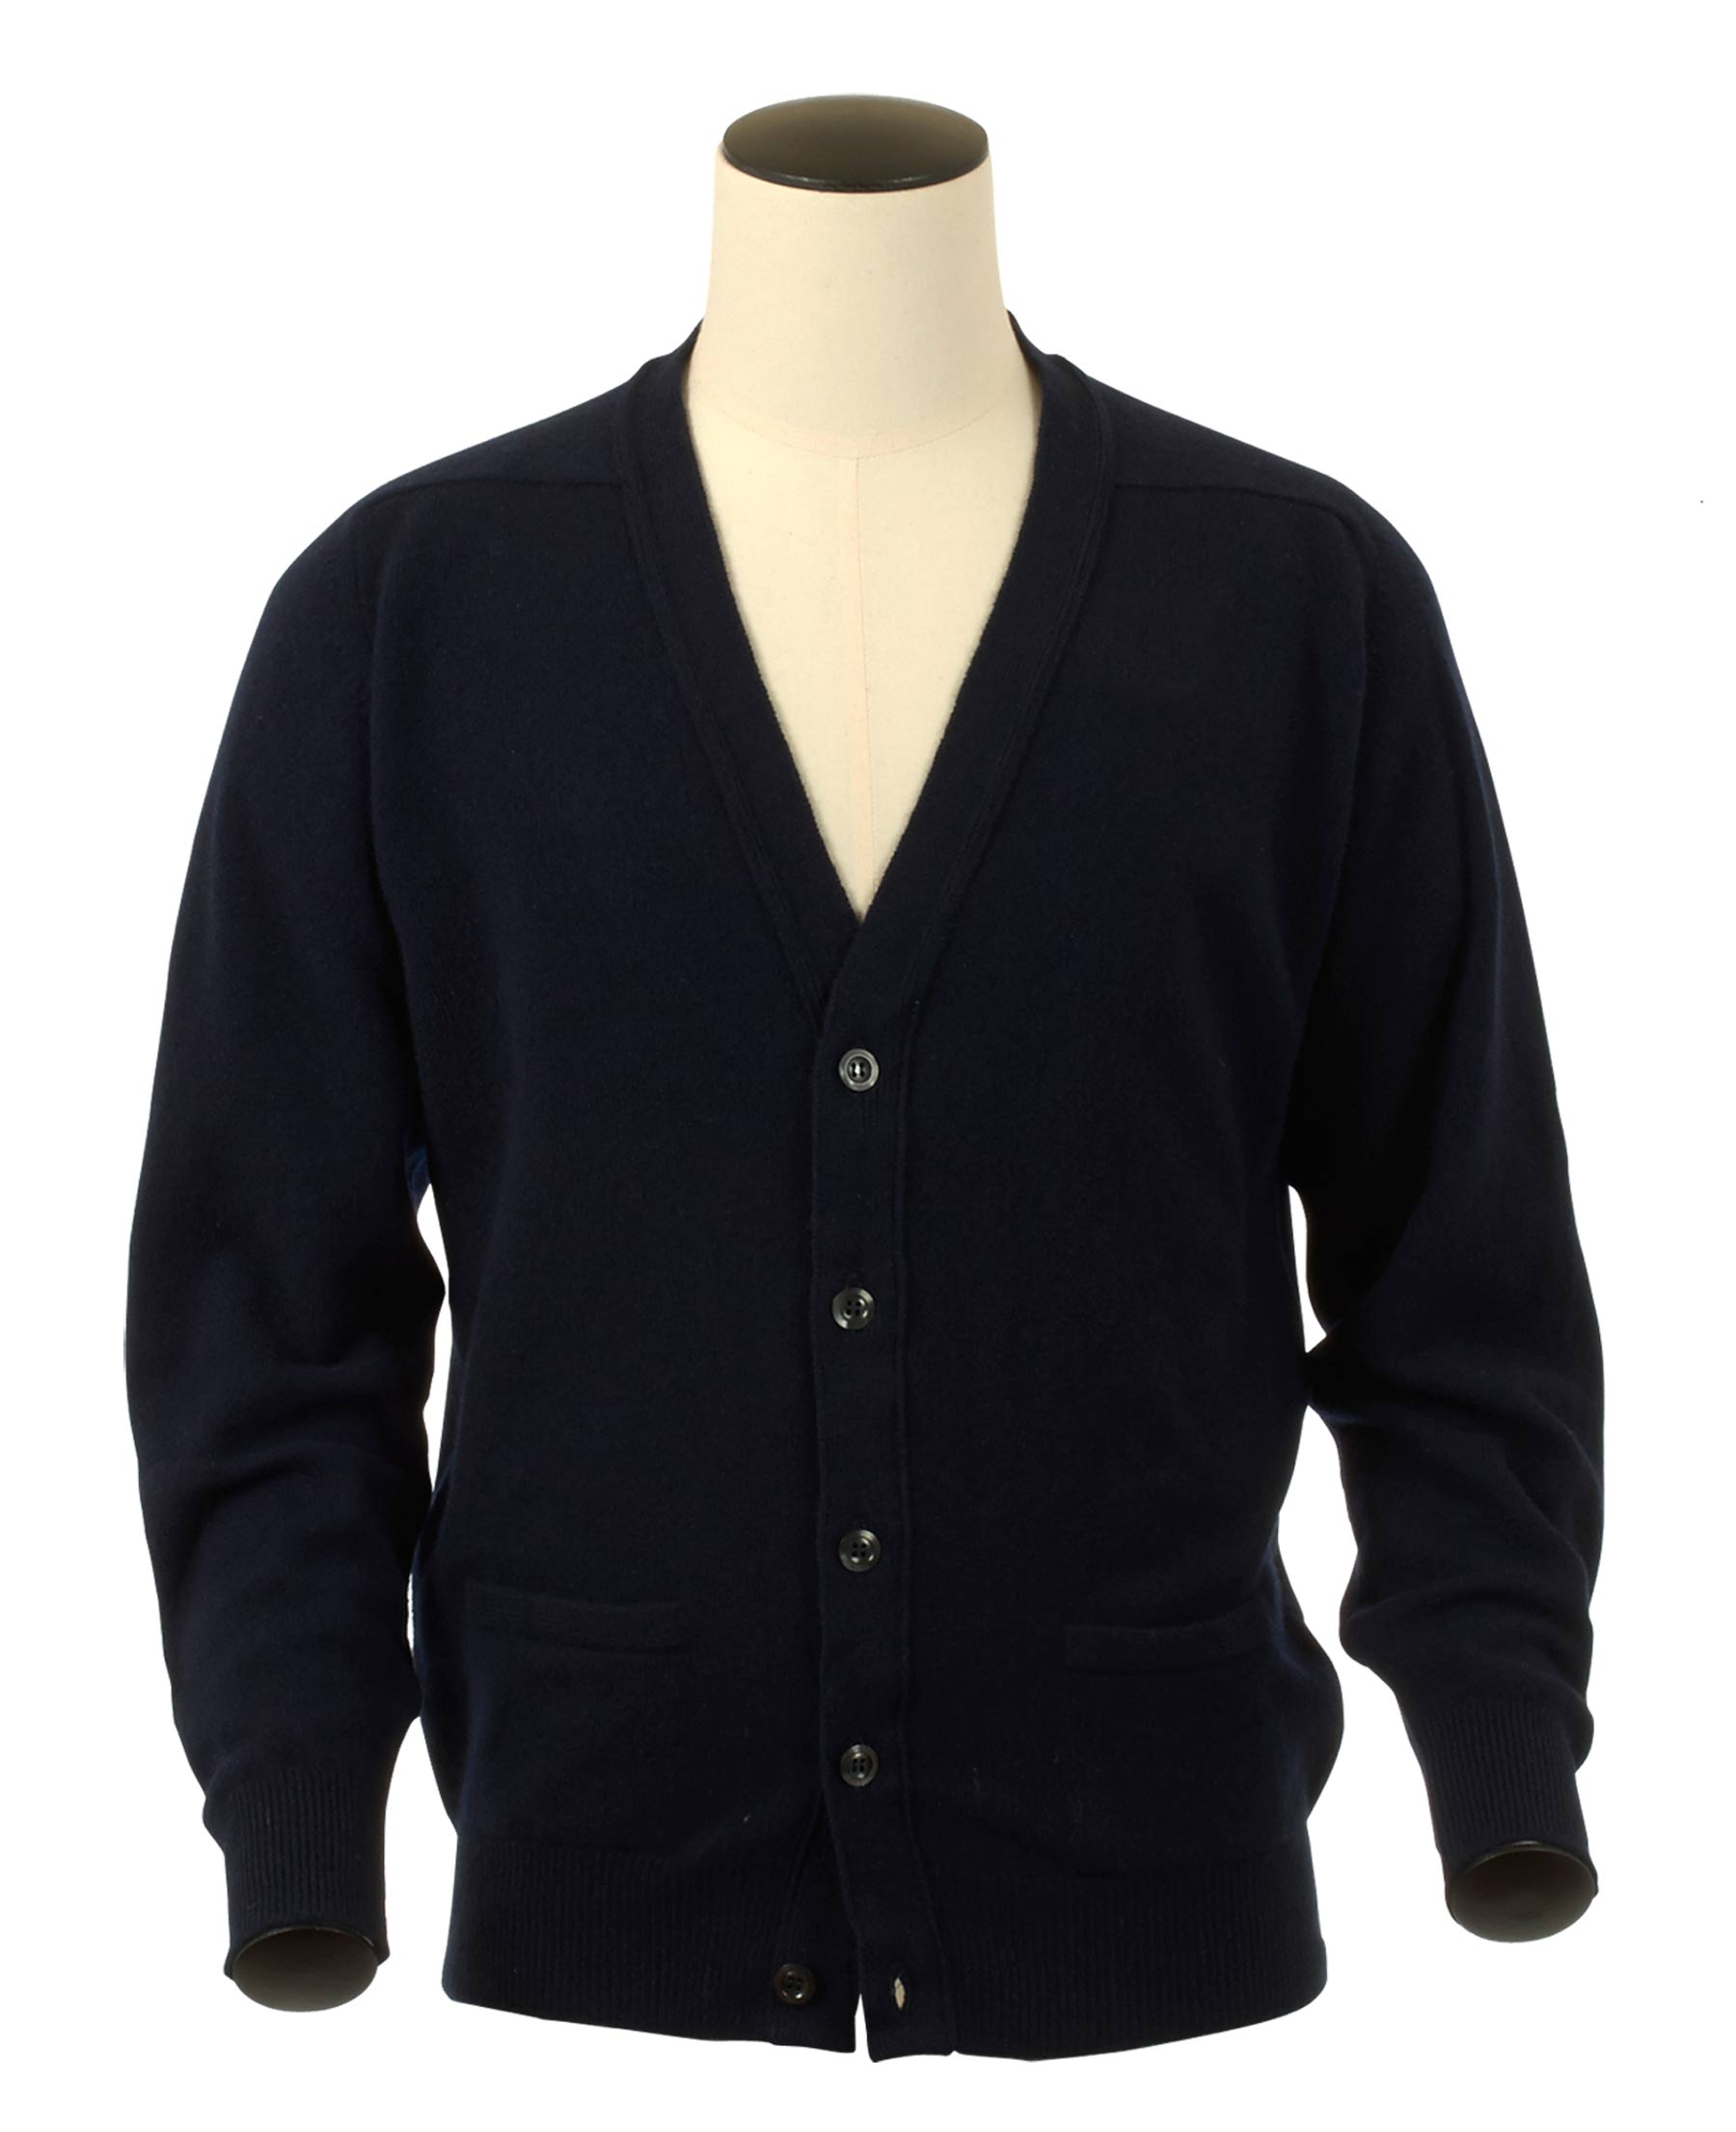 Bart Navy - Vêtements laine geelong